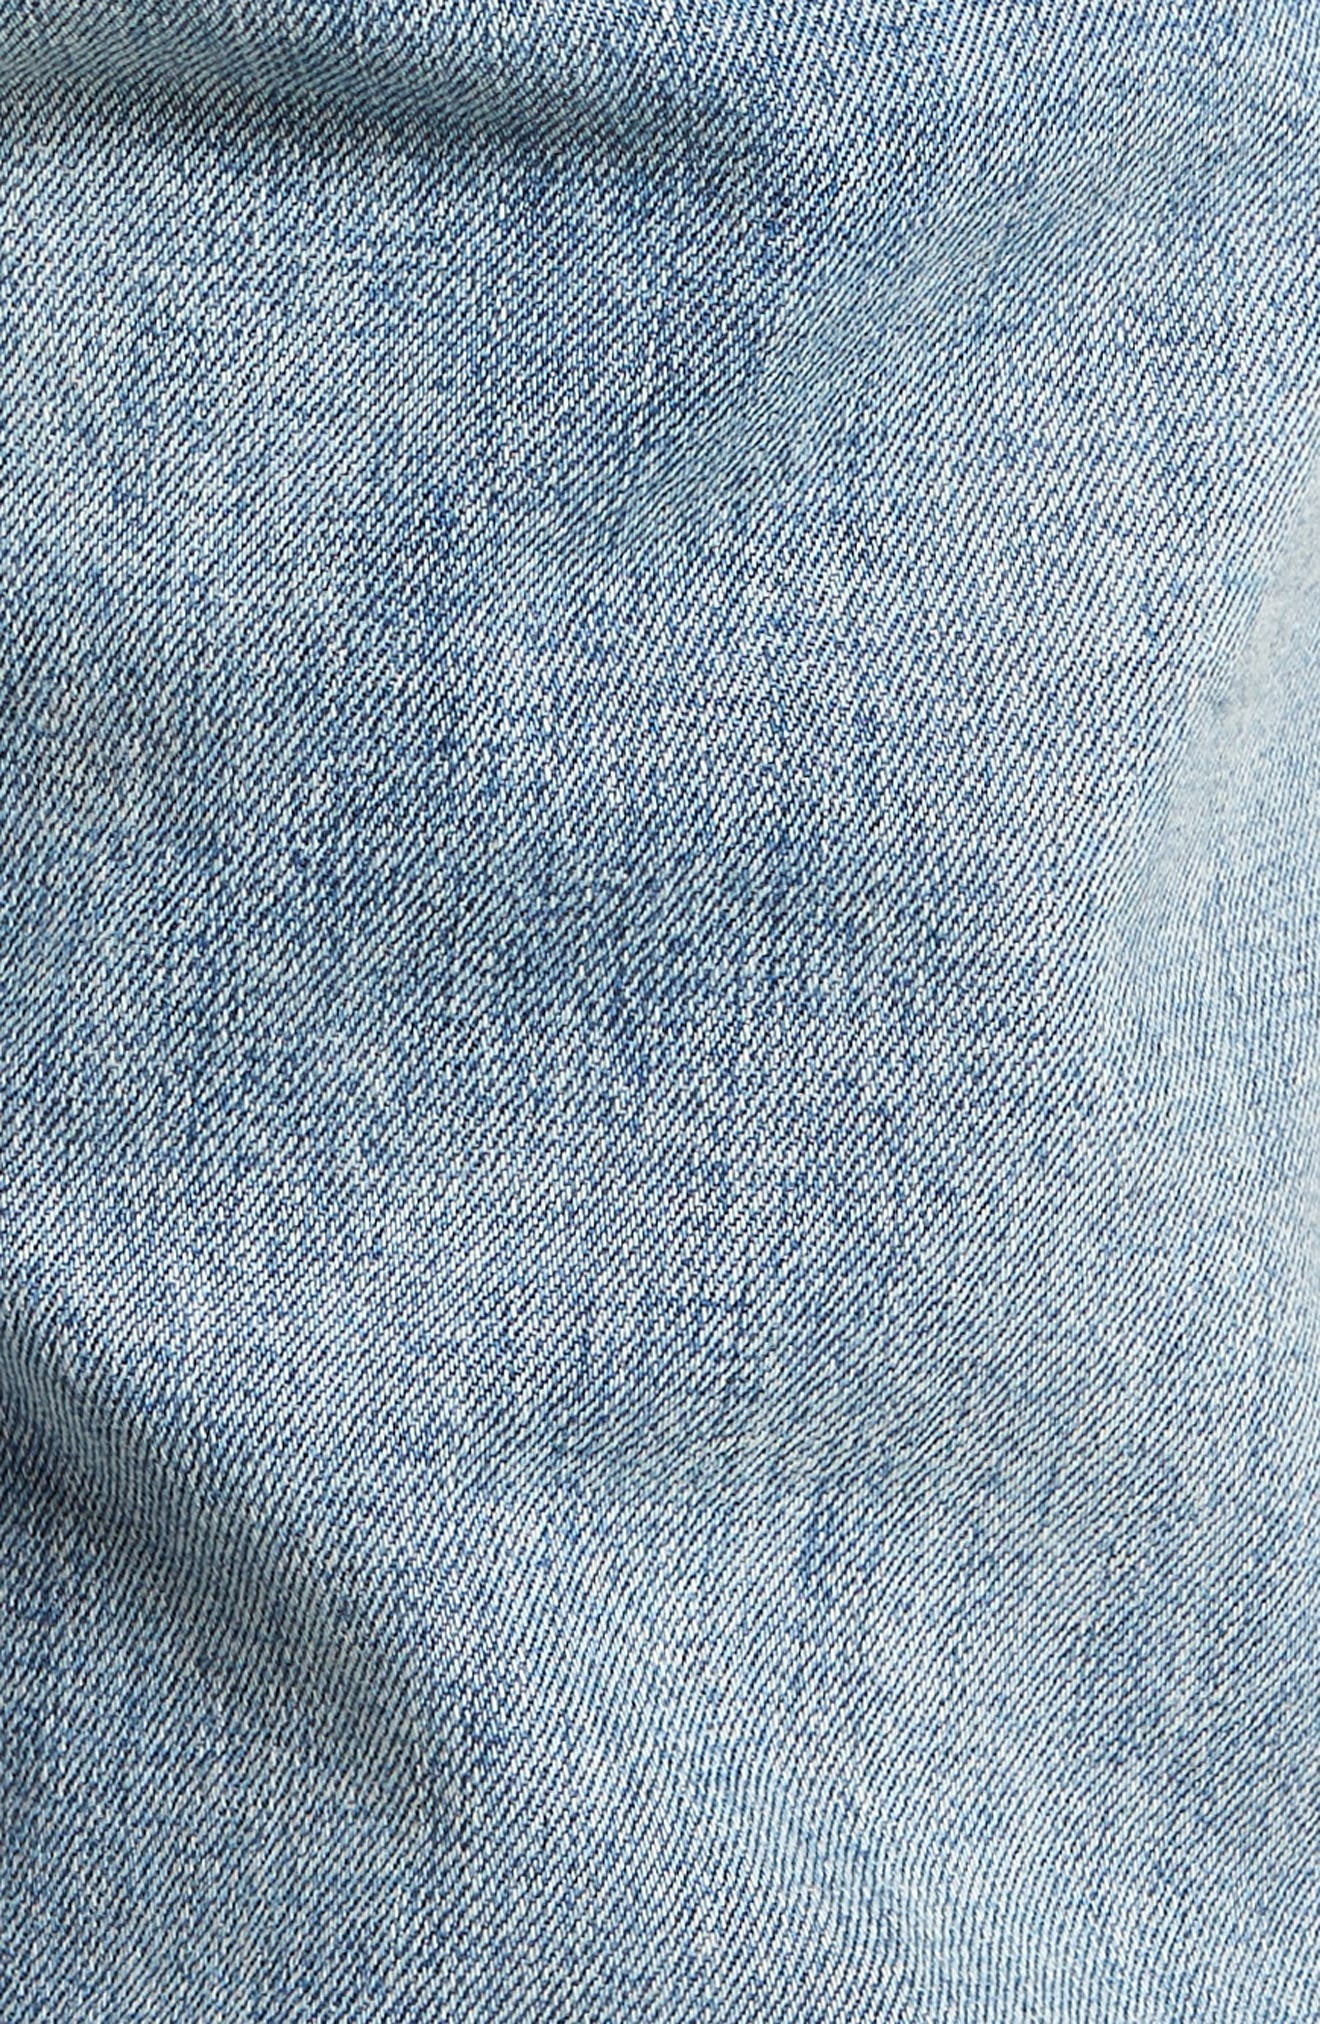 LEVI'S<SUP>®</SUP> MADE & CRAFTED<SUP>™</SUP>,                             Needle Narrow Skinny Fit Denim,                             Alternate thumbnail 5, color,                             420